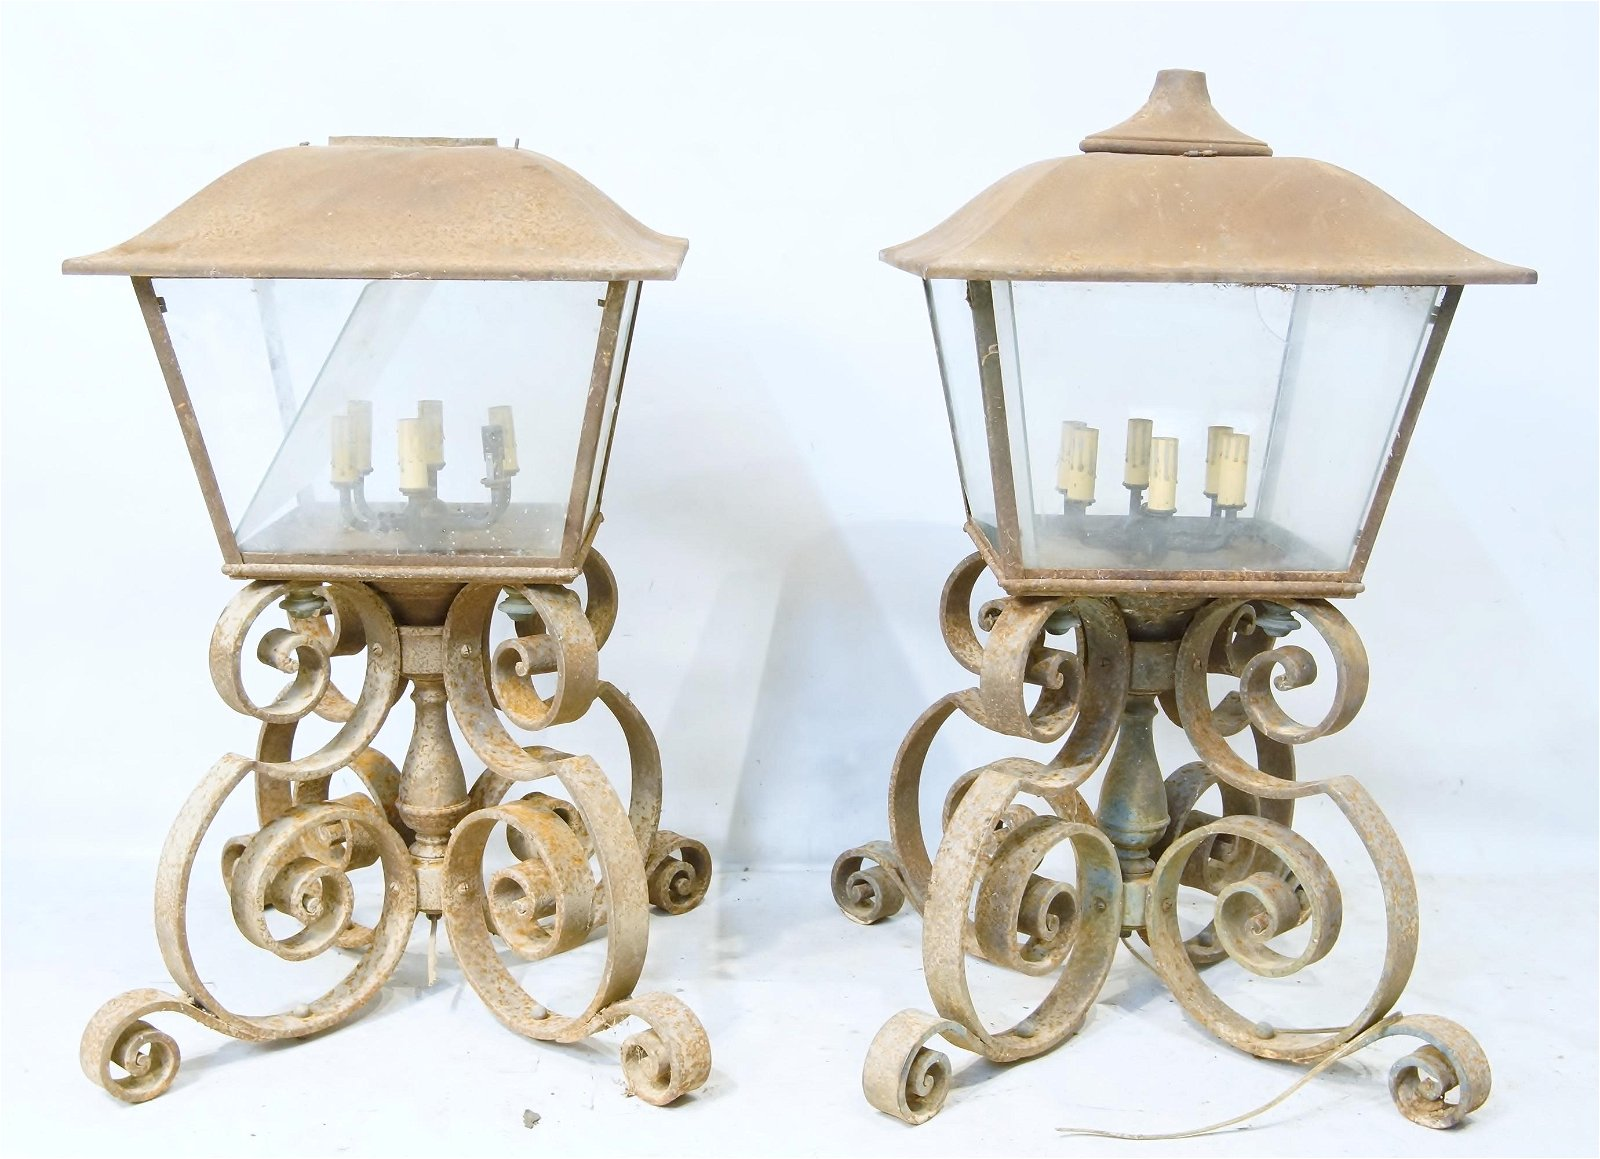 Pair of Large Antique wrought Iron outdoor lamps